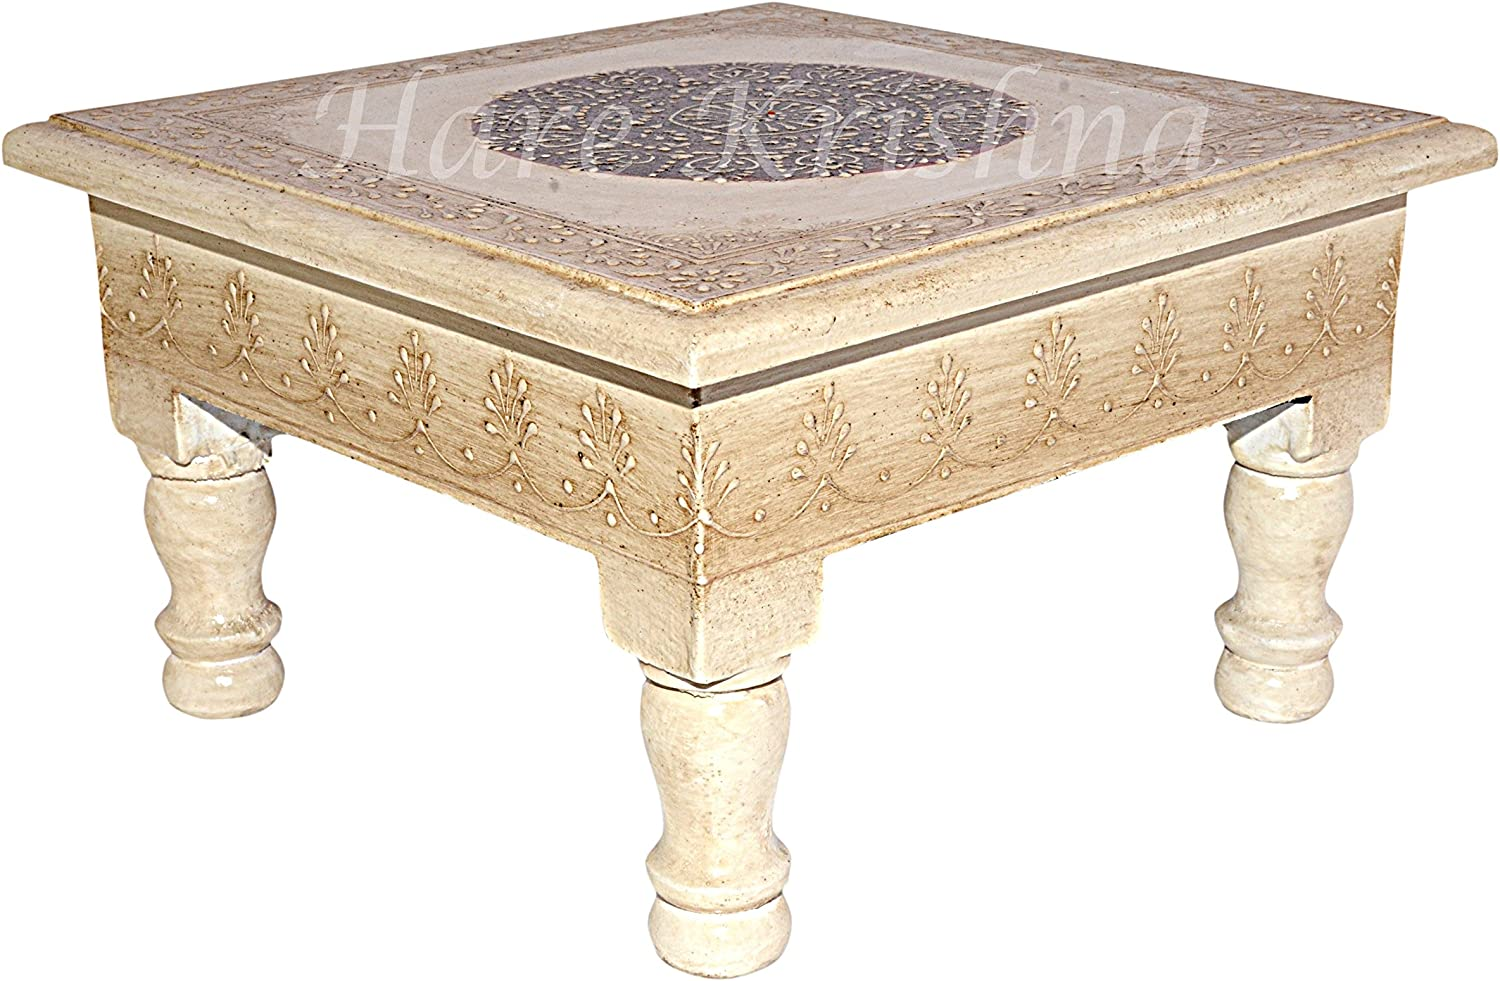 Meenakari Work Design Small Table Footstool Stool